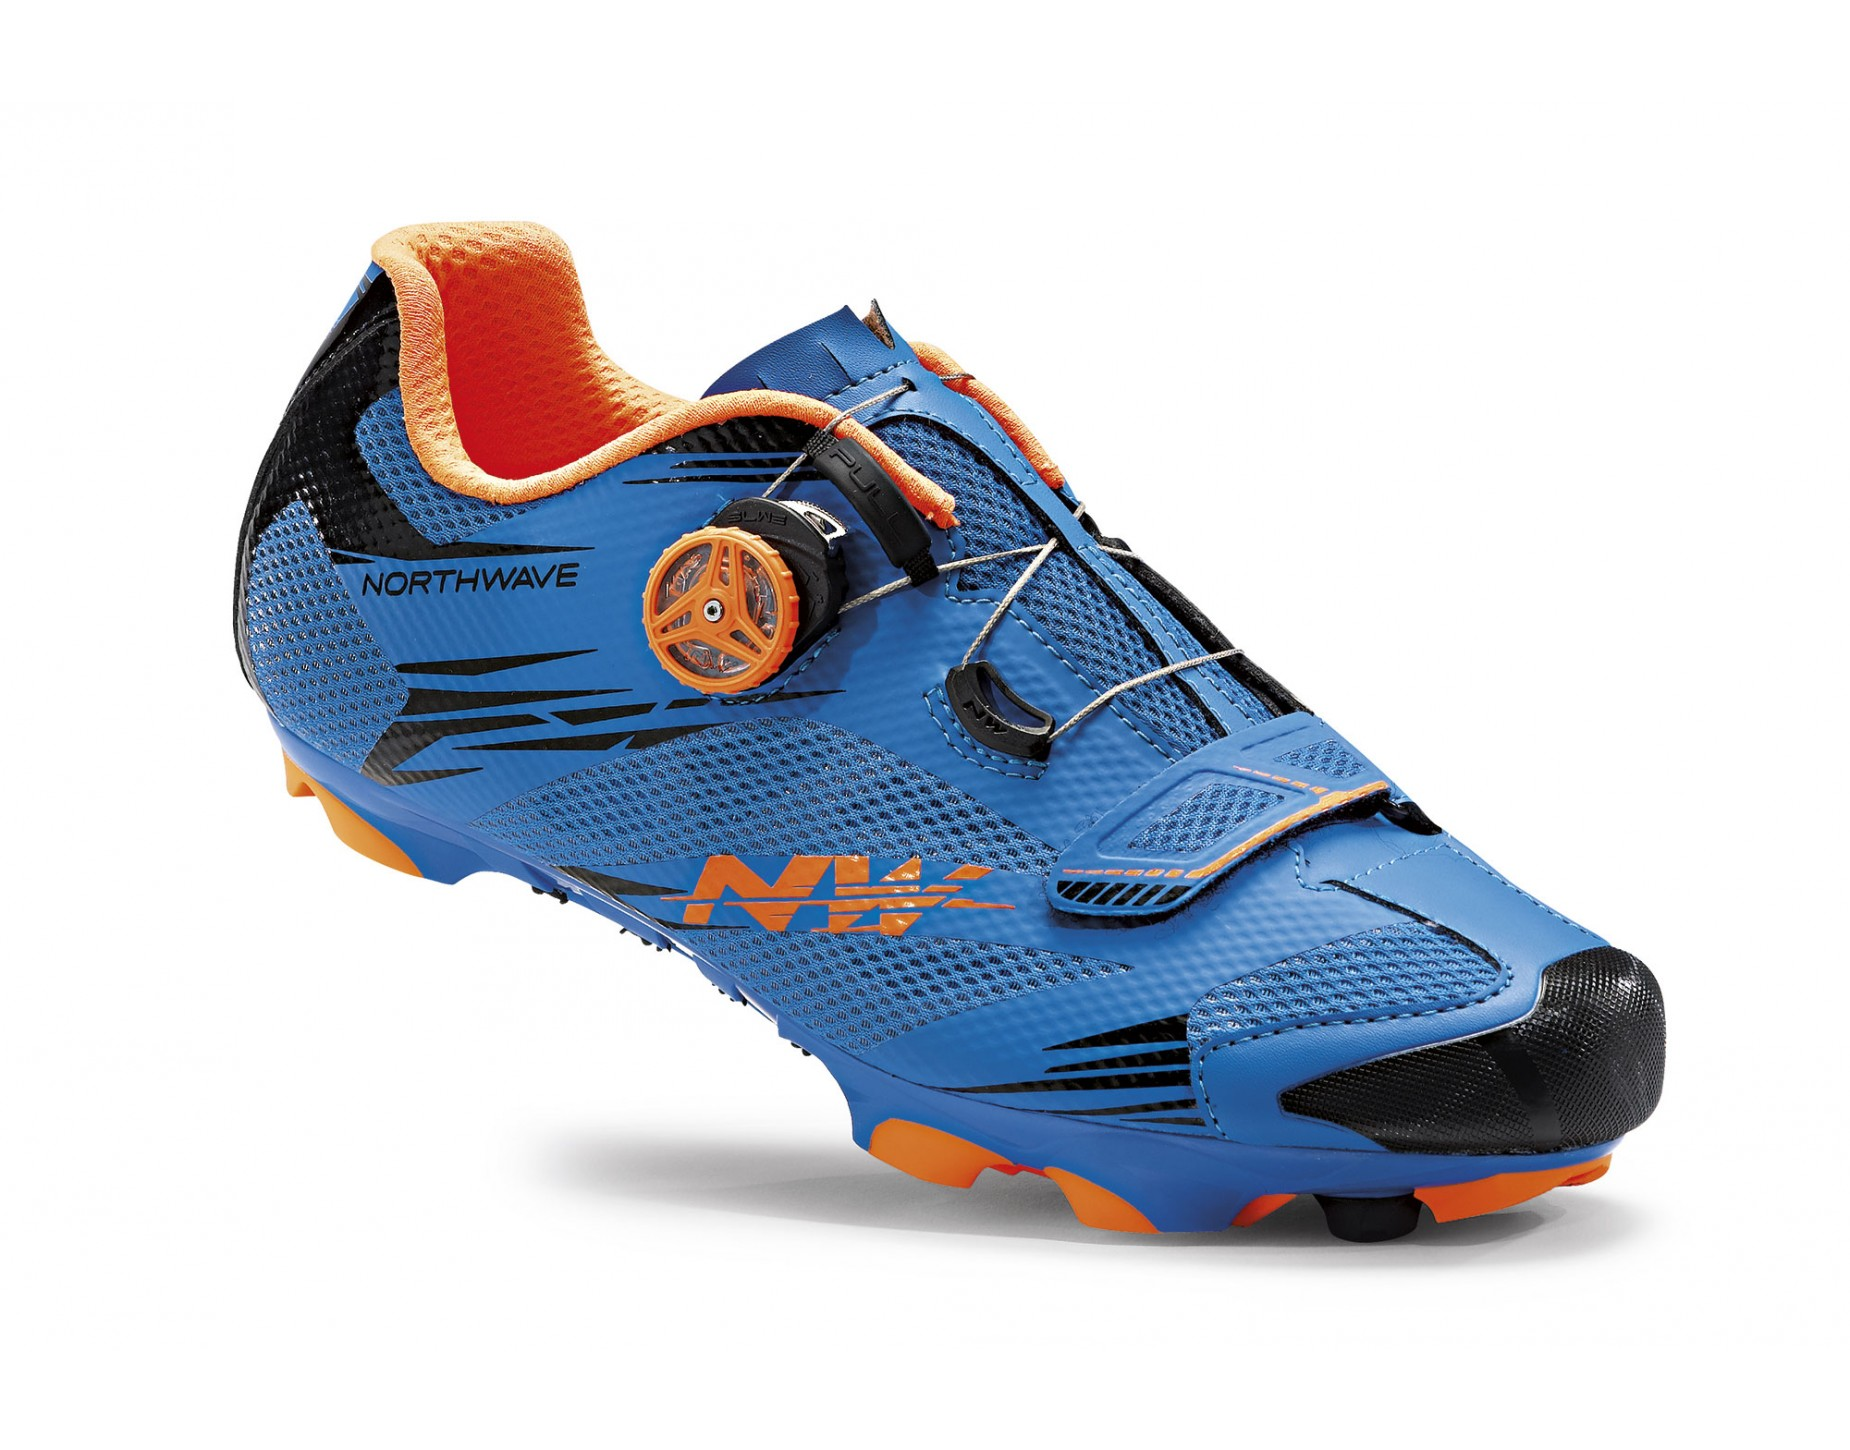 NORTHWAVE SCORPIUS 2 PLUS MTB shoes – everything you need ...